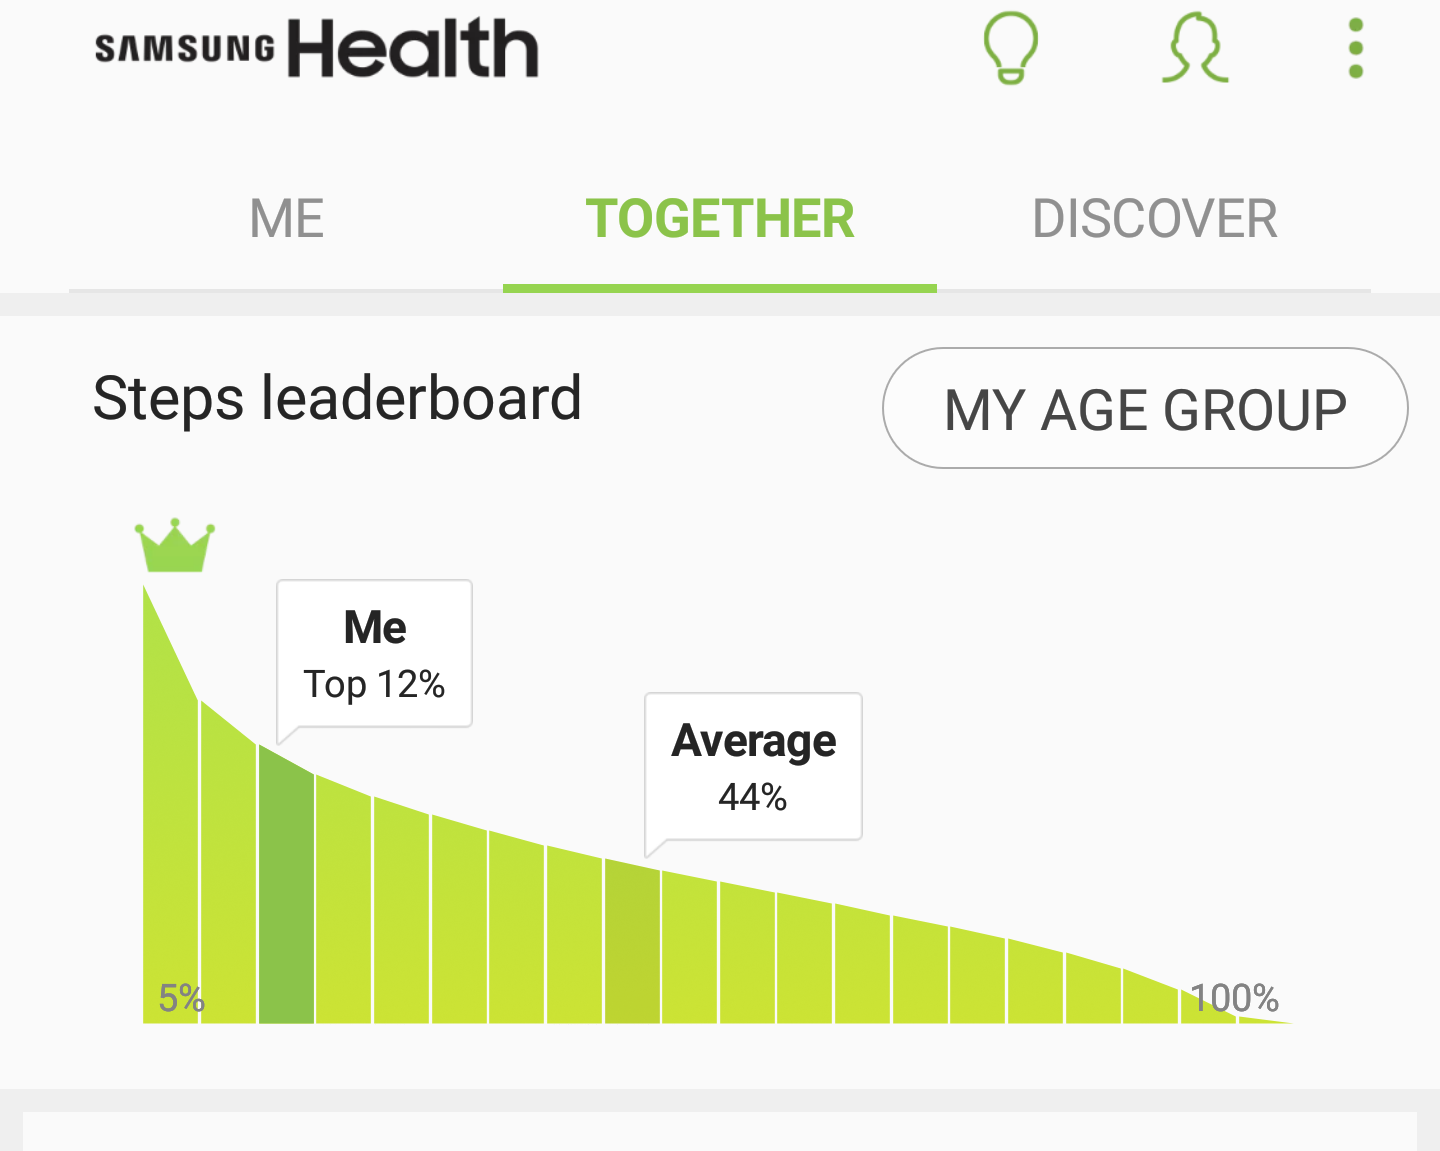 Samsung_Health_Together_My_Age_Group